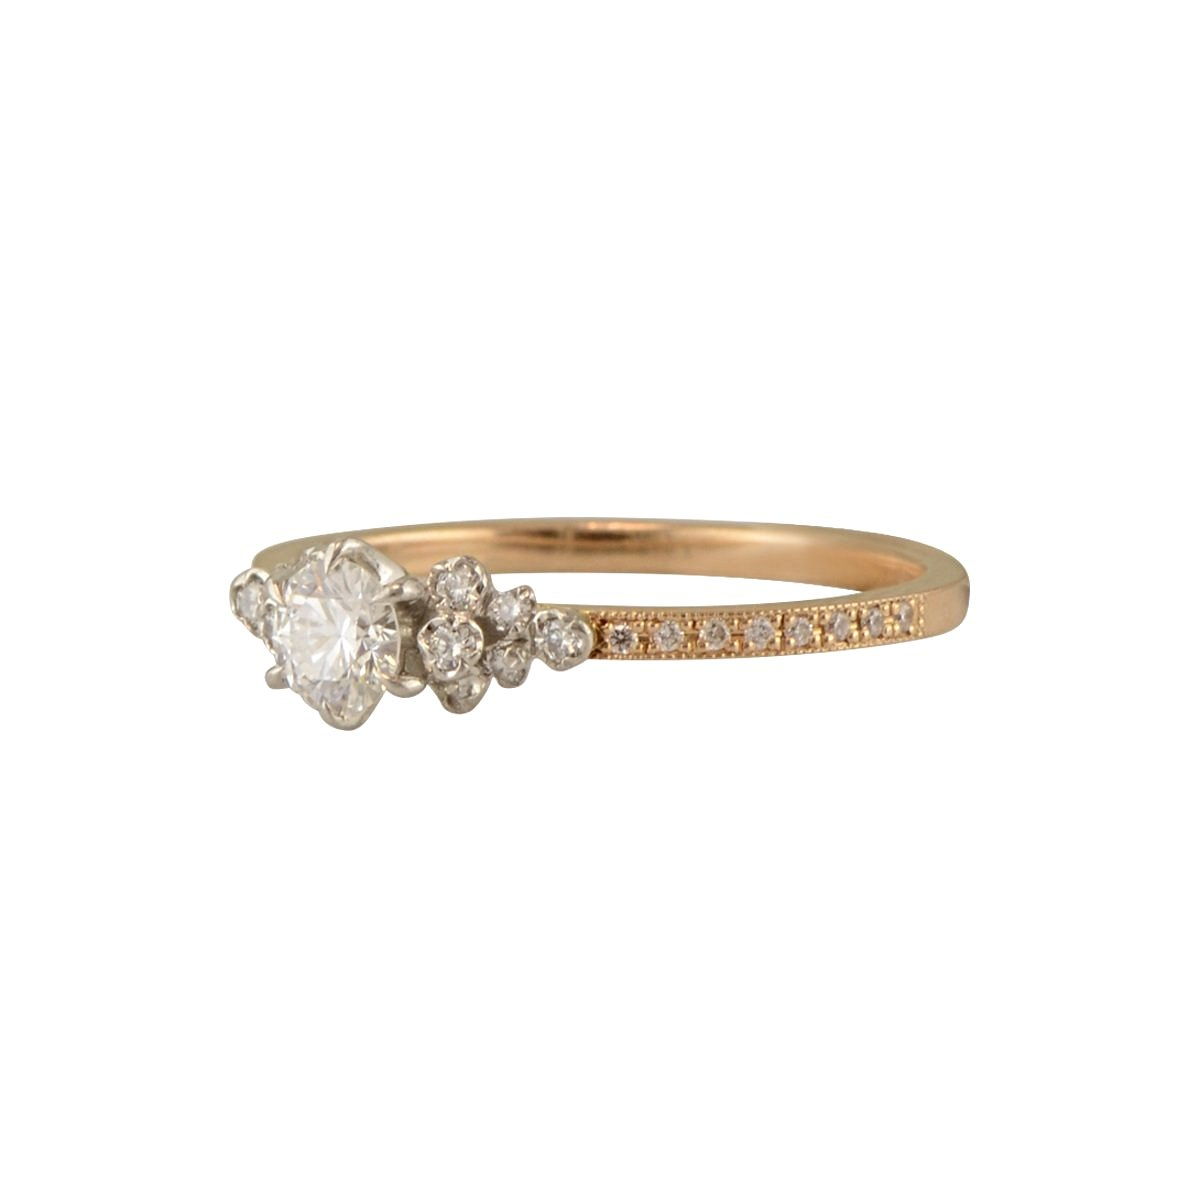 'Portia' Antique Engagement ring in diamond and rose gold